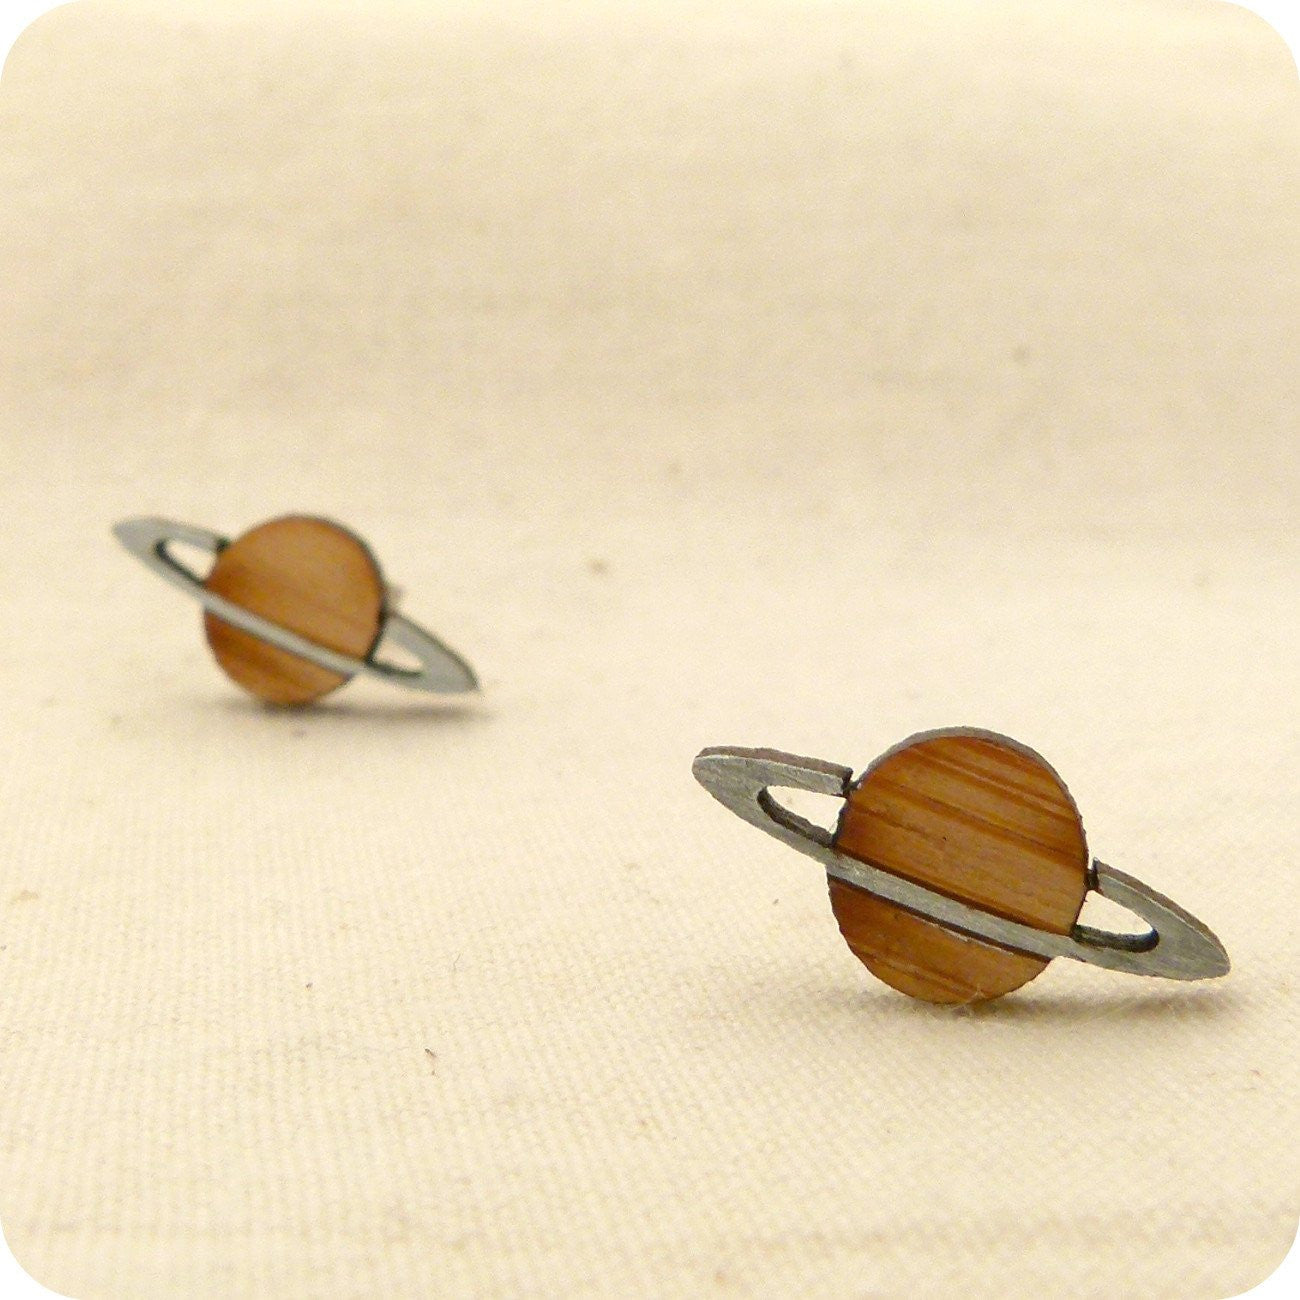 One Happy Leaf - Planet Earrings - last minute gift idea - melbourne